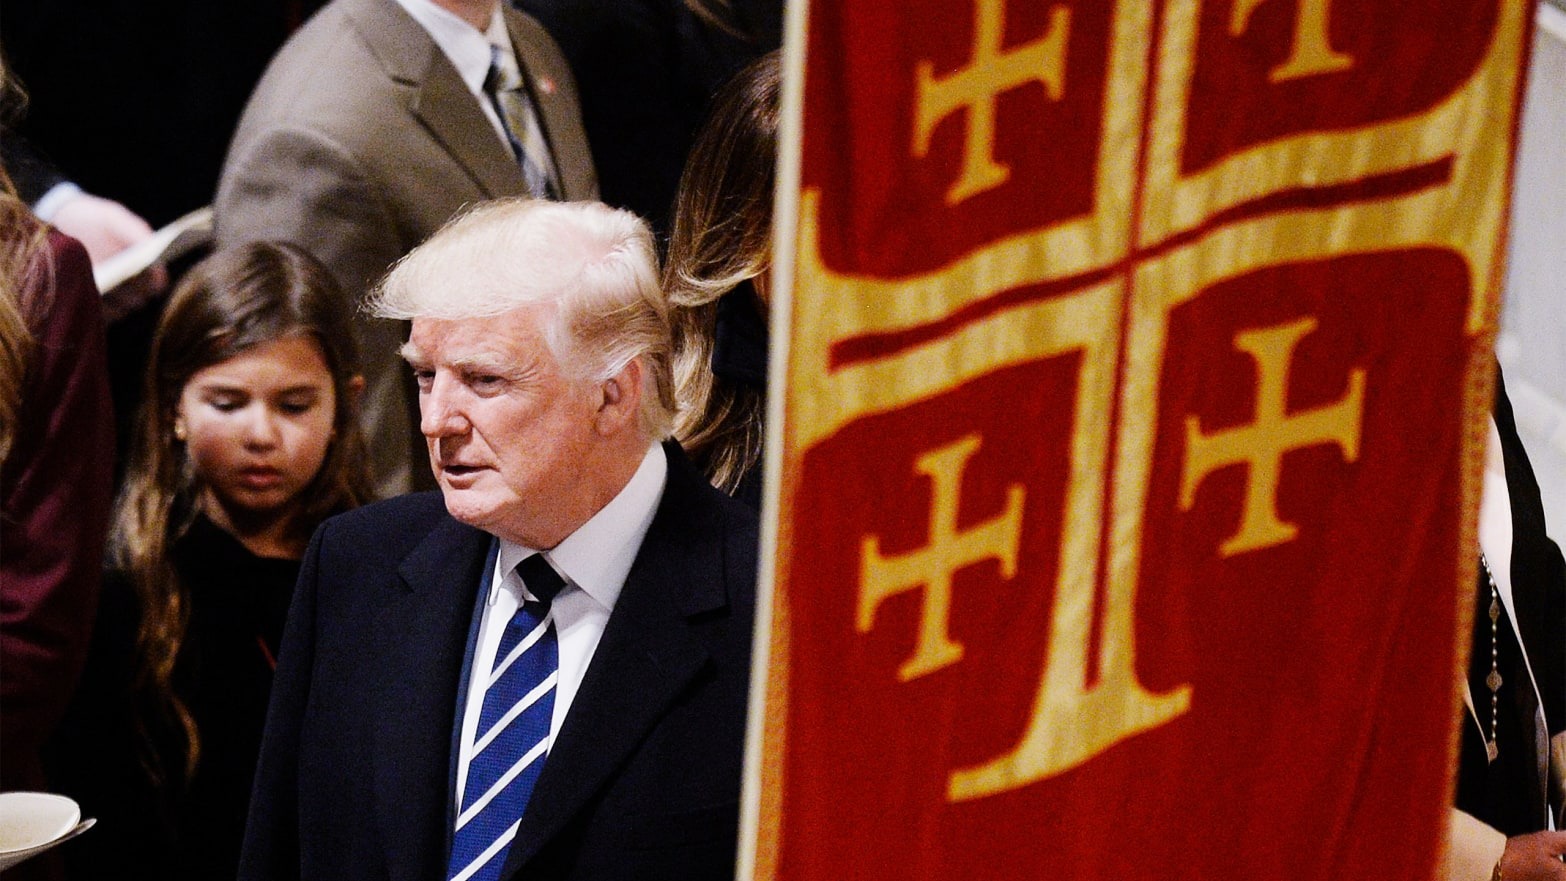 Stop Kidding Yourself: This Is A Christian Right Presidency